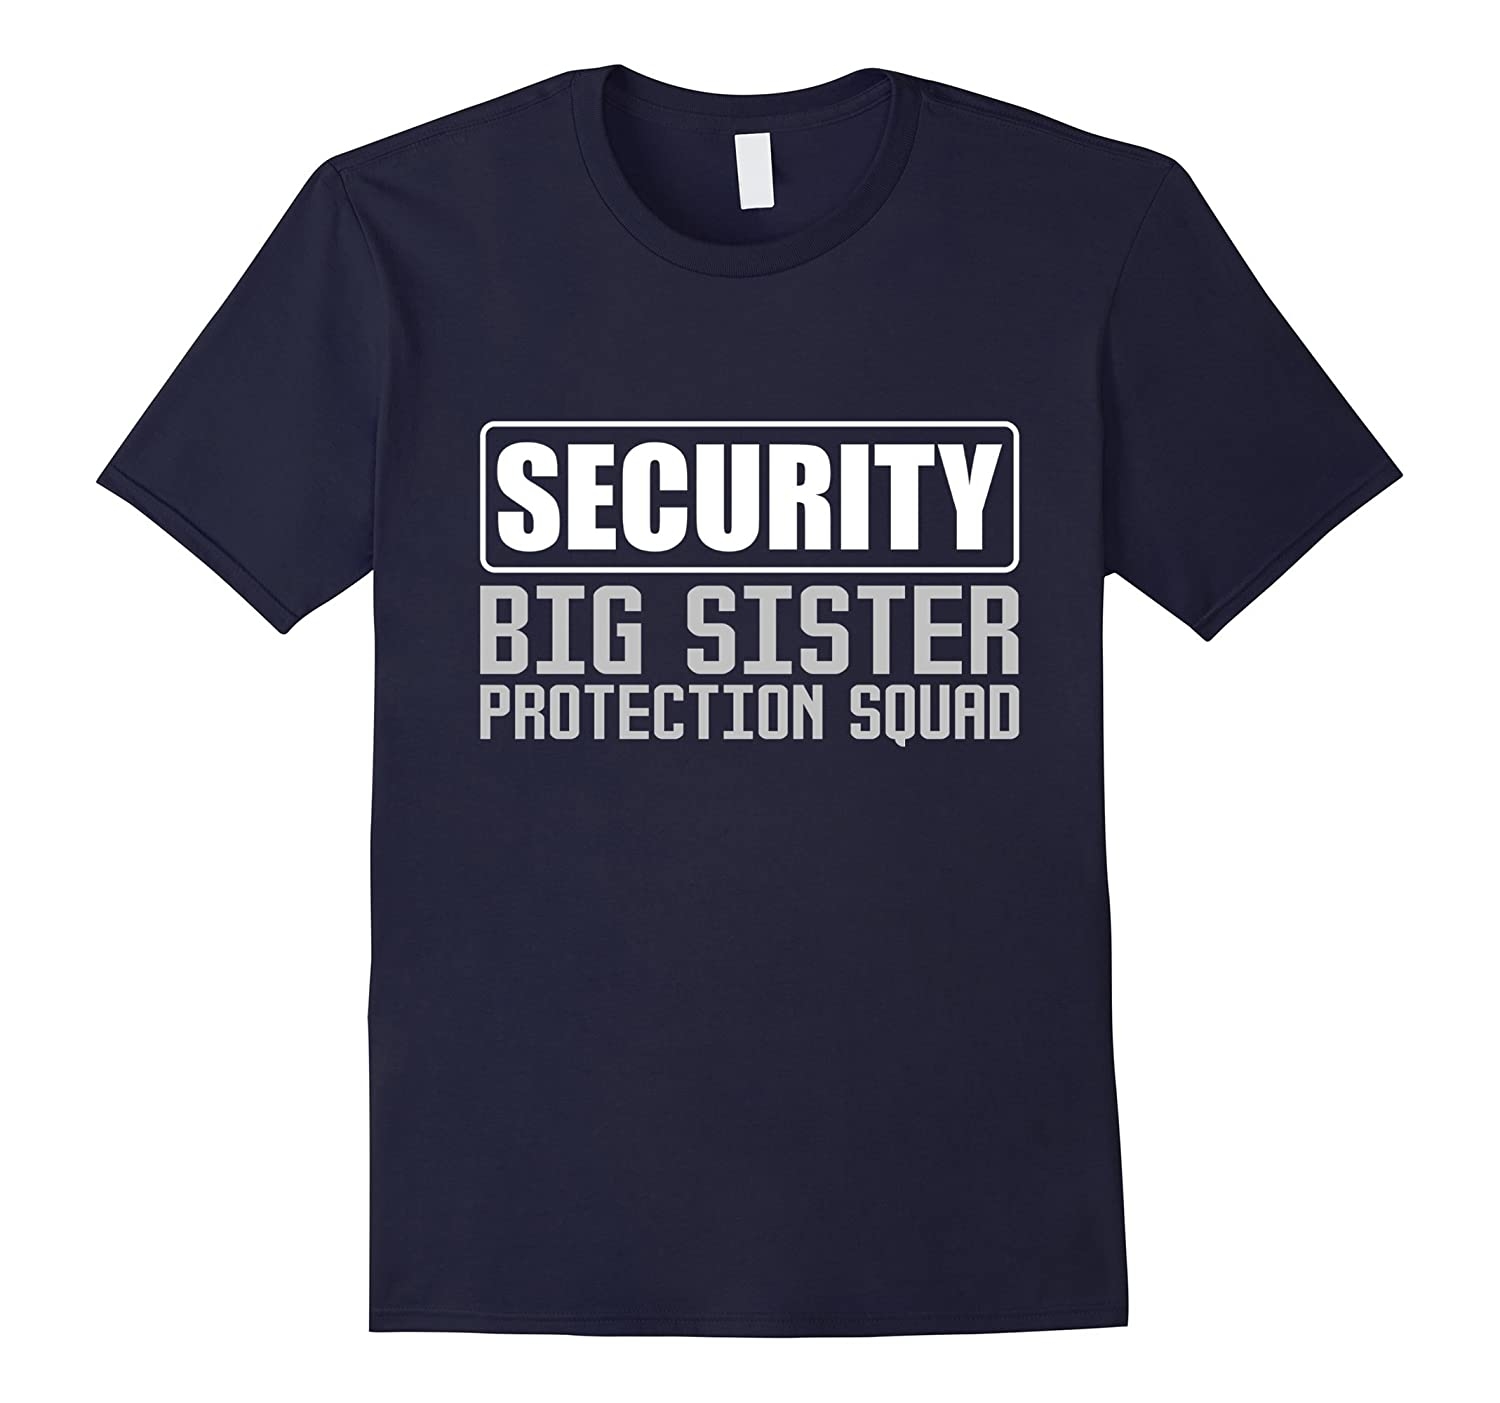 Security Big Sister Protection Squad - T Shirt-BN